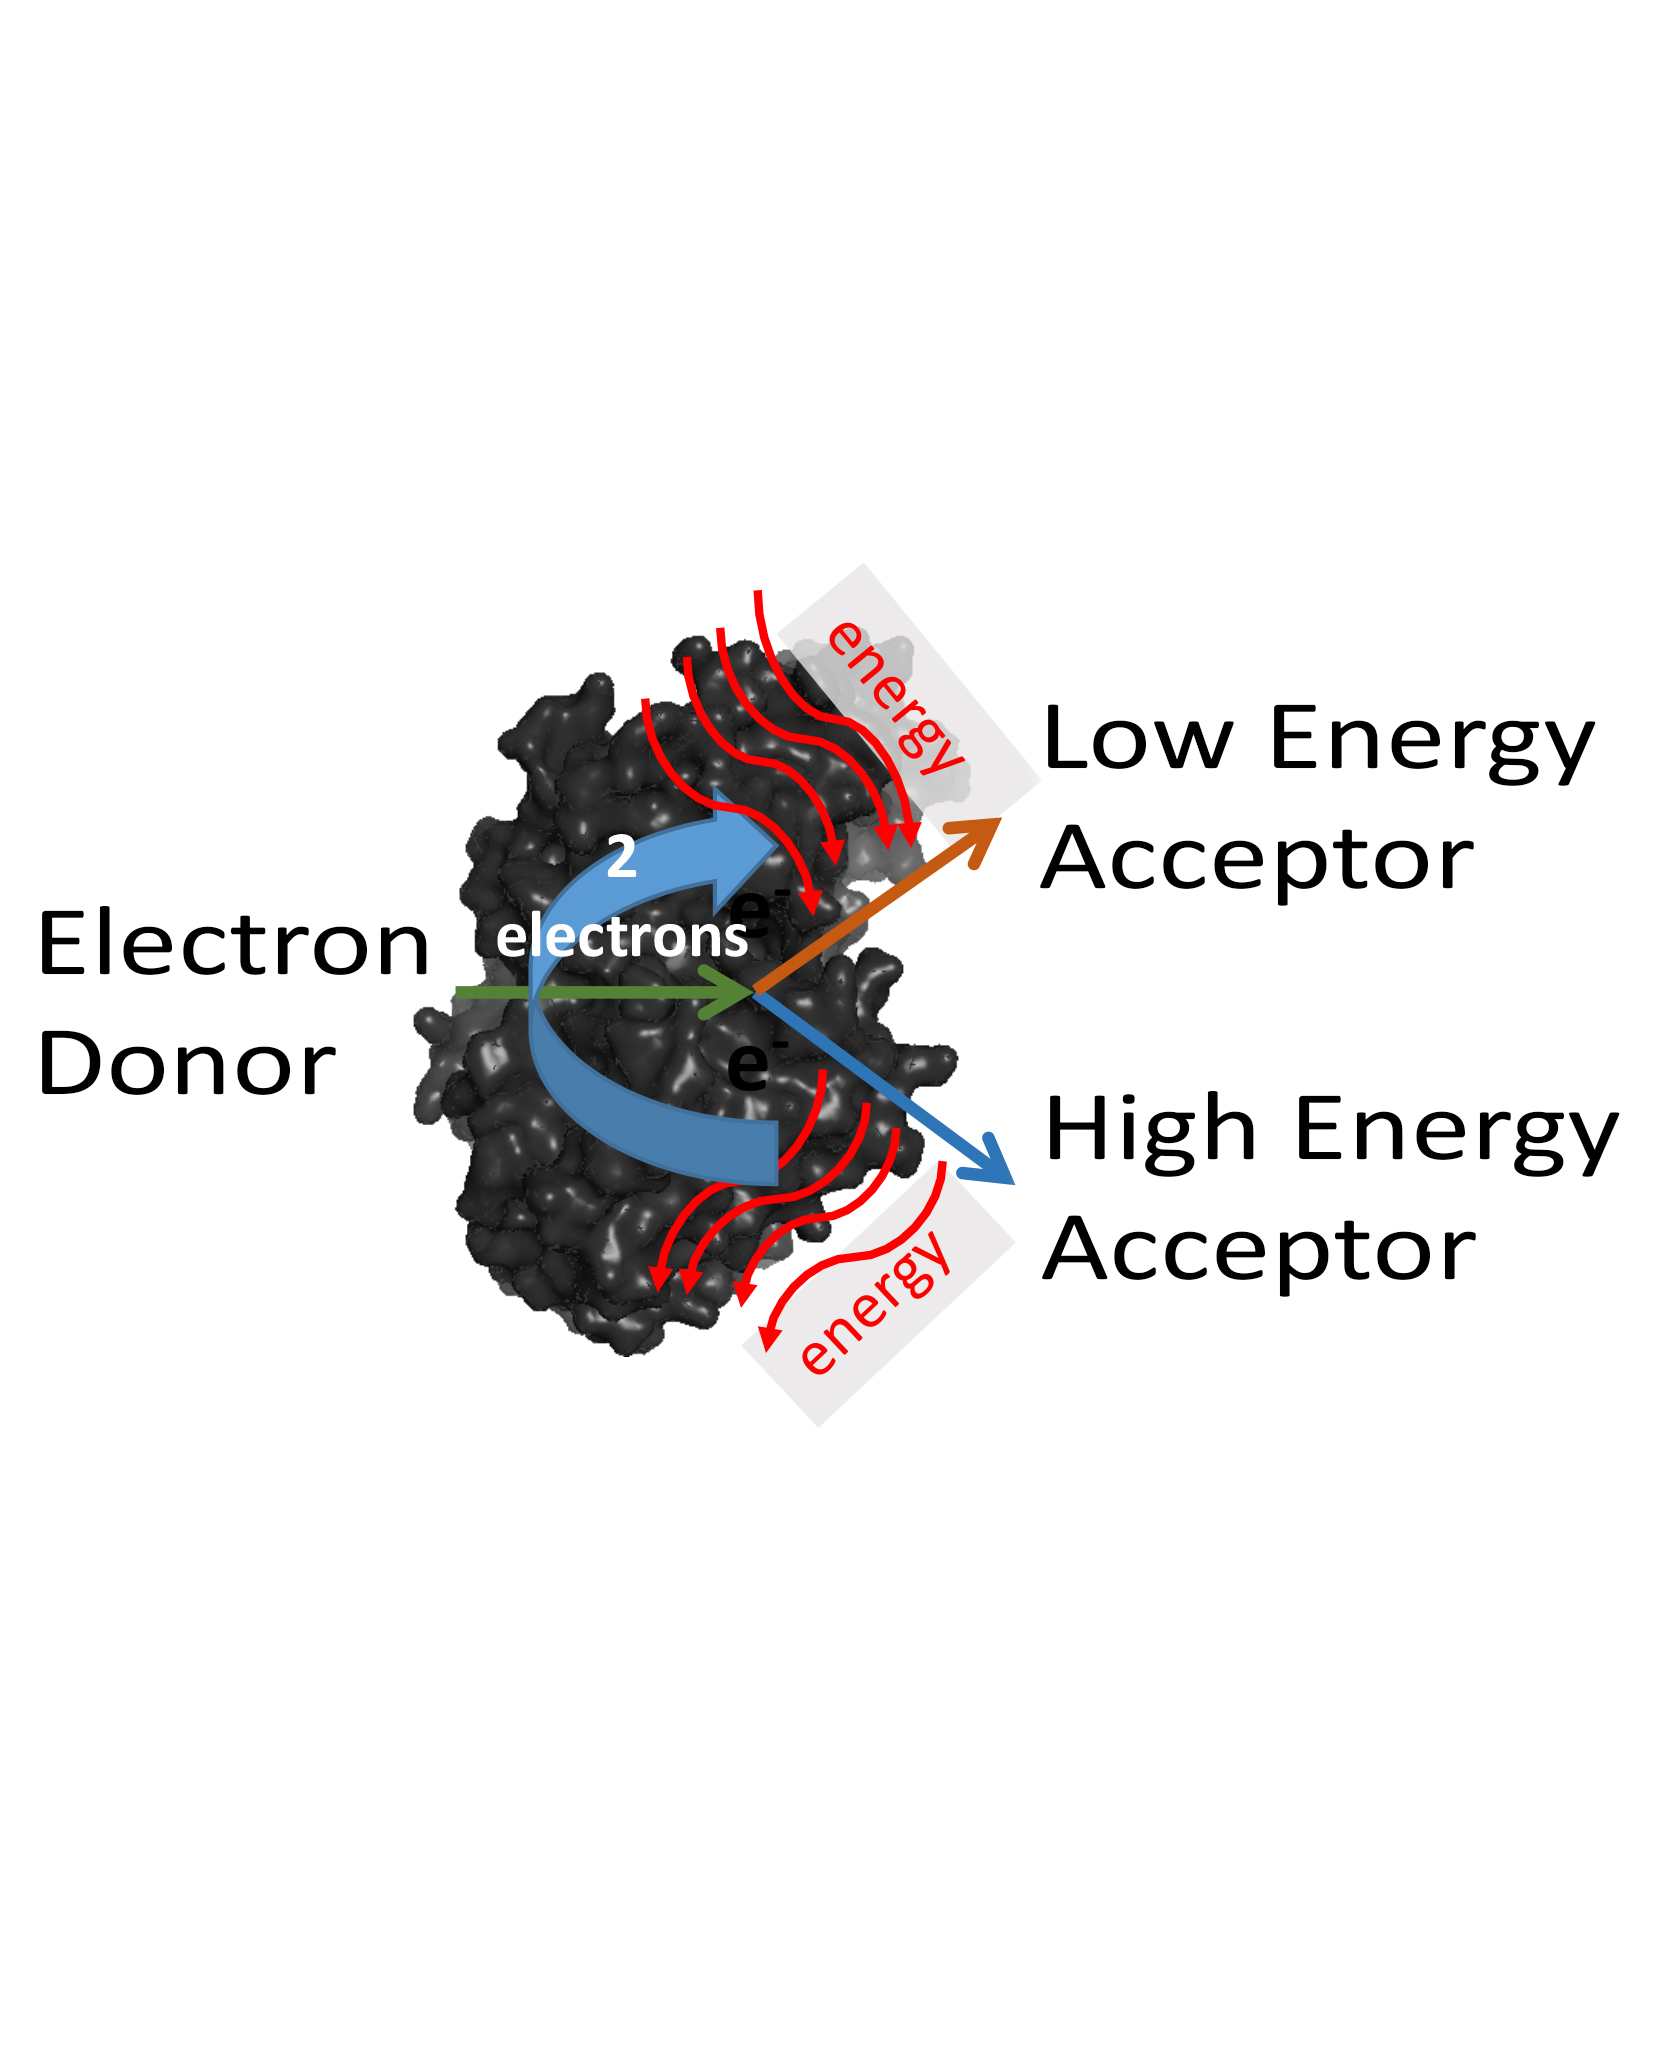 Microbes Making the Most of Their Energy Sources | Energy Frontier